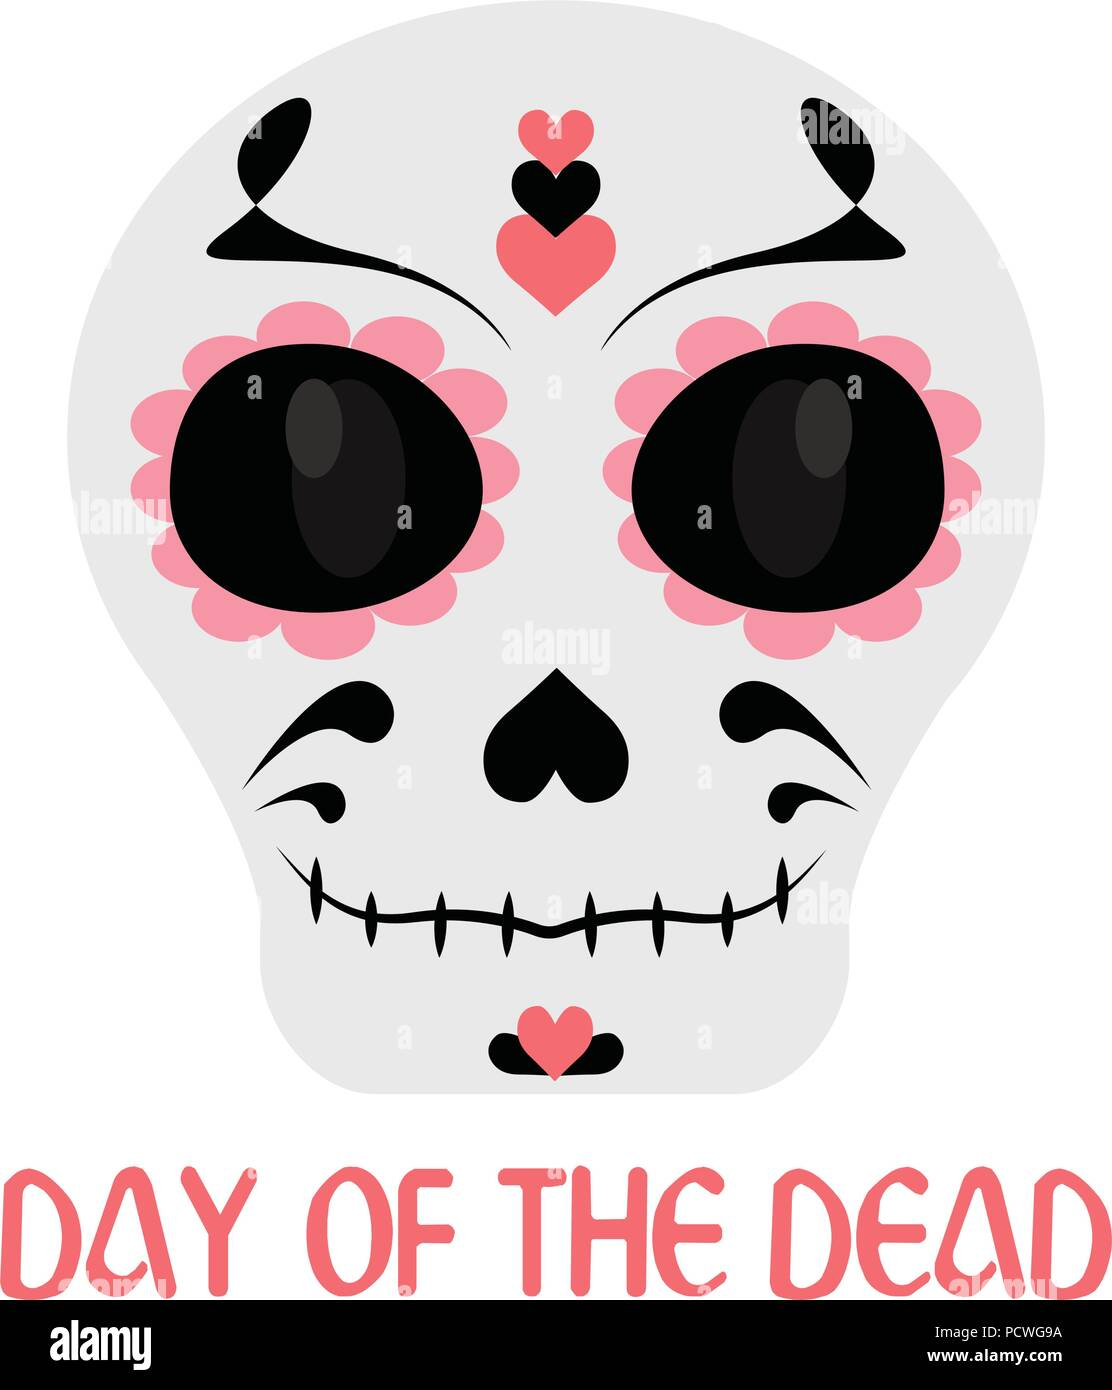 hight resolution of day of the dead stock vector